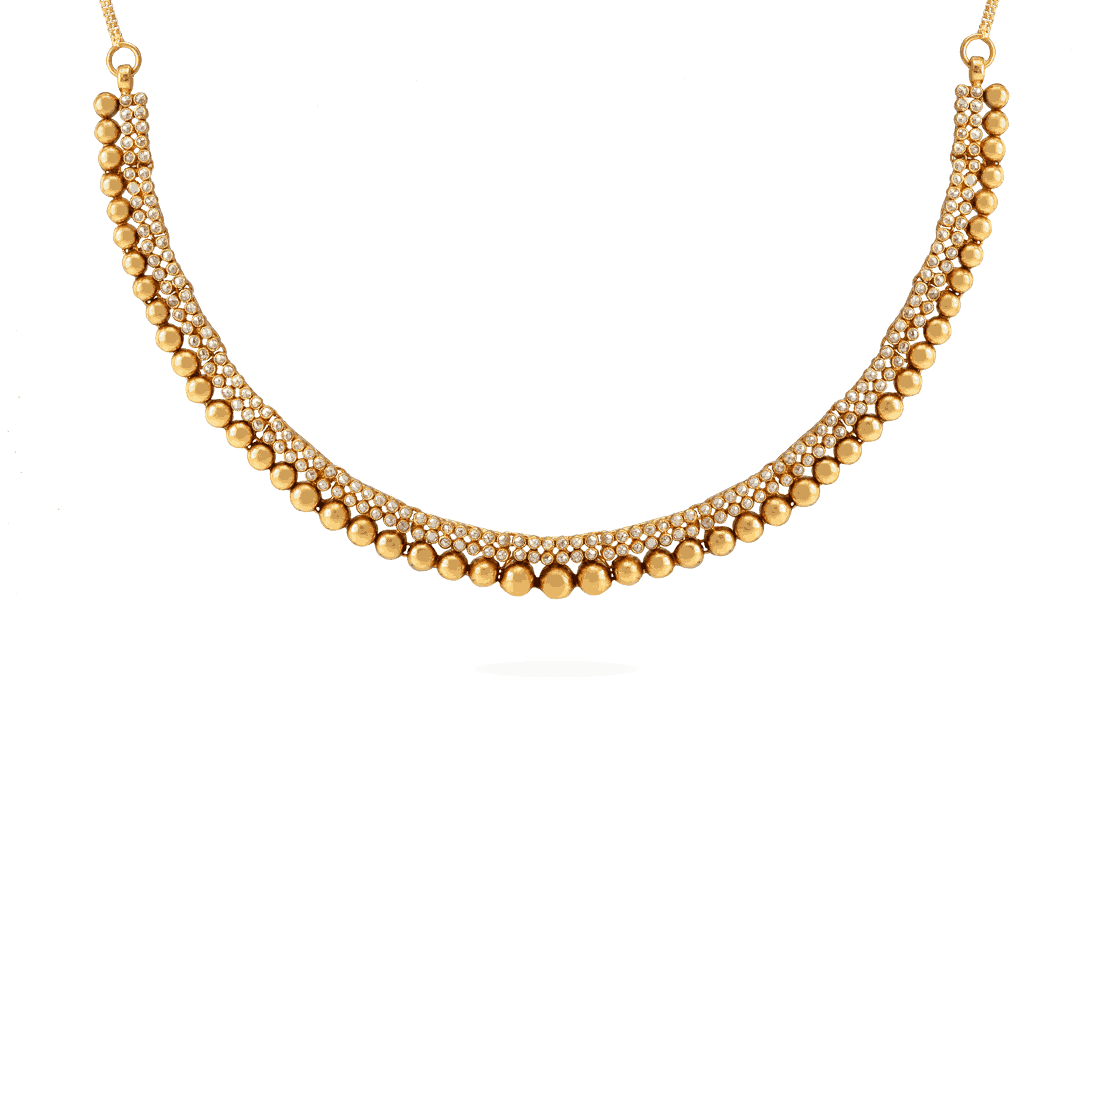 necklace_23903.png